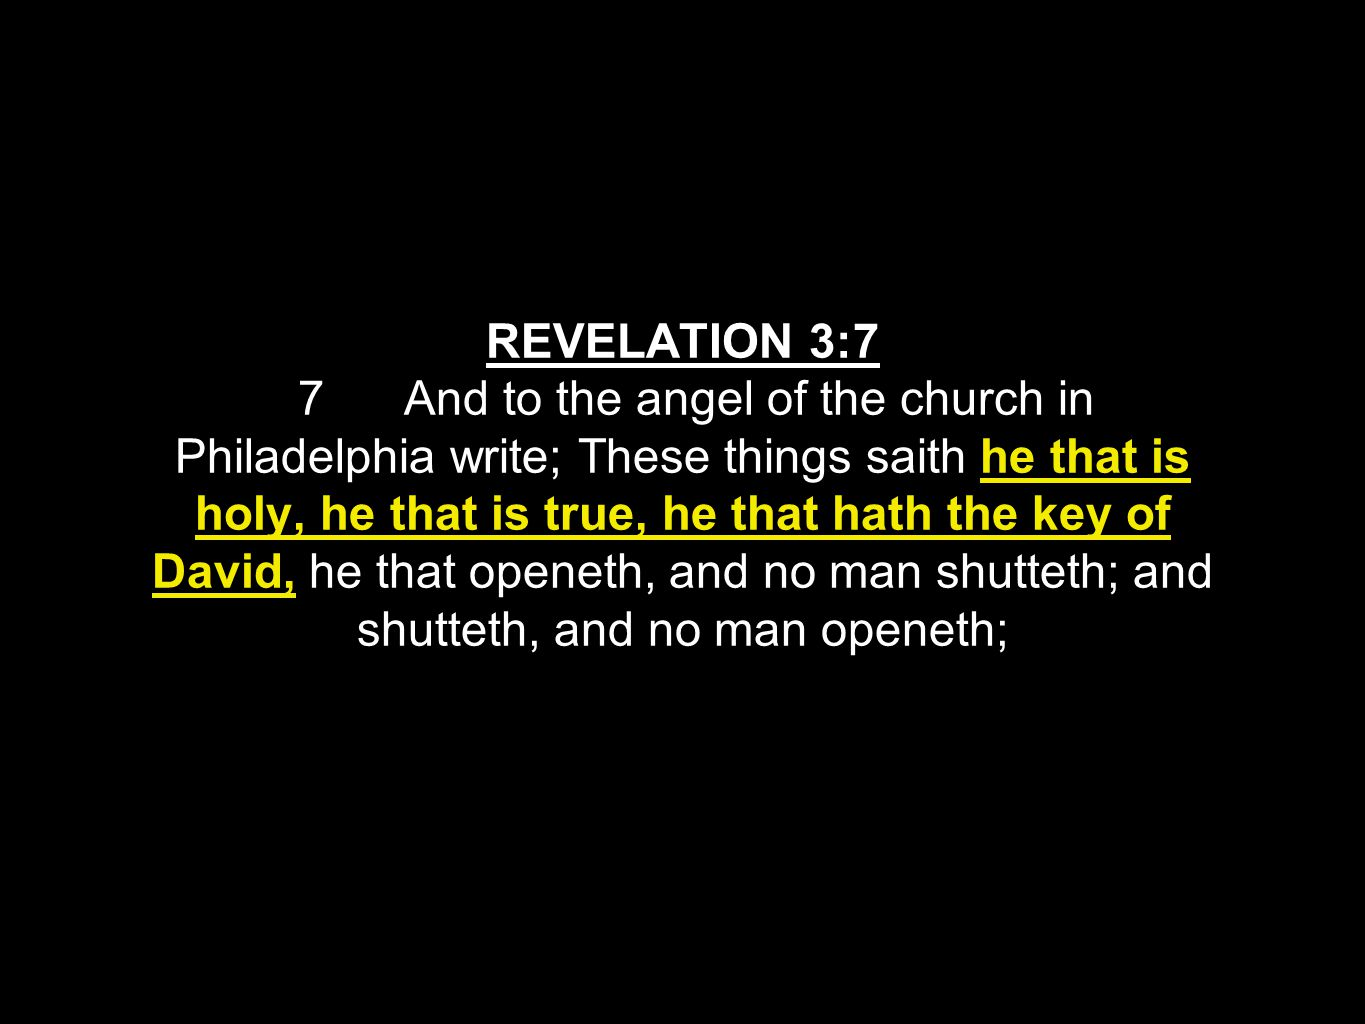 REVELATION 3:7 7 And to the angel of the church in Philadelphia write; These things saith he that is holy, he that is true, he that hath the key of David, he that openeth, and no man shutteth; and shutteth, and no man openeth;